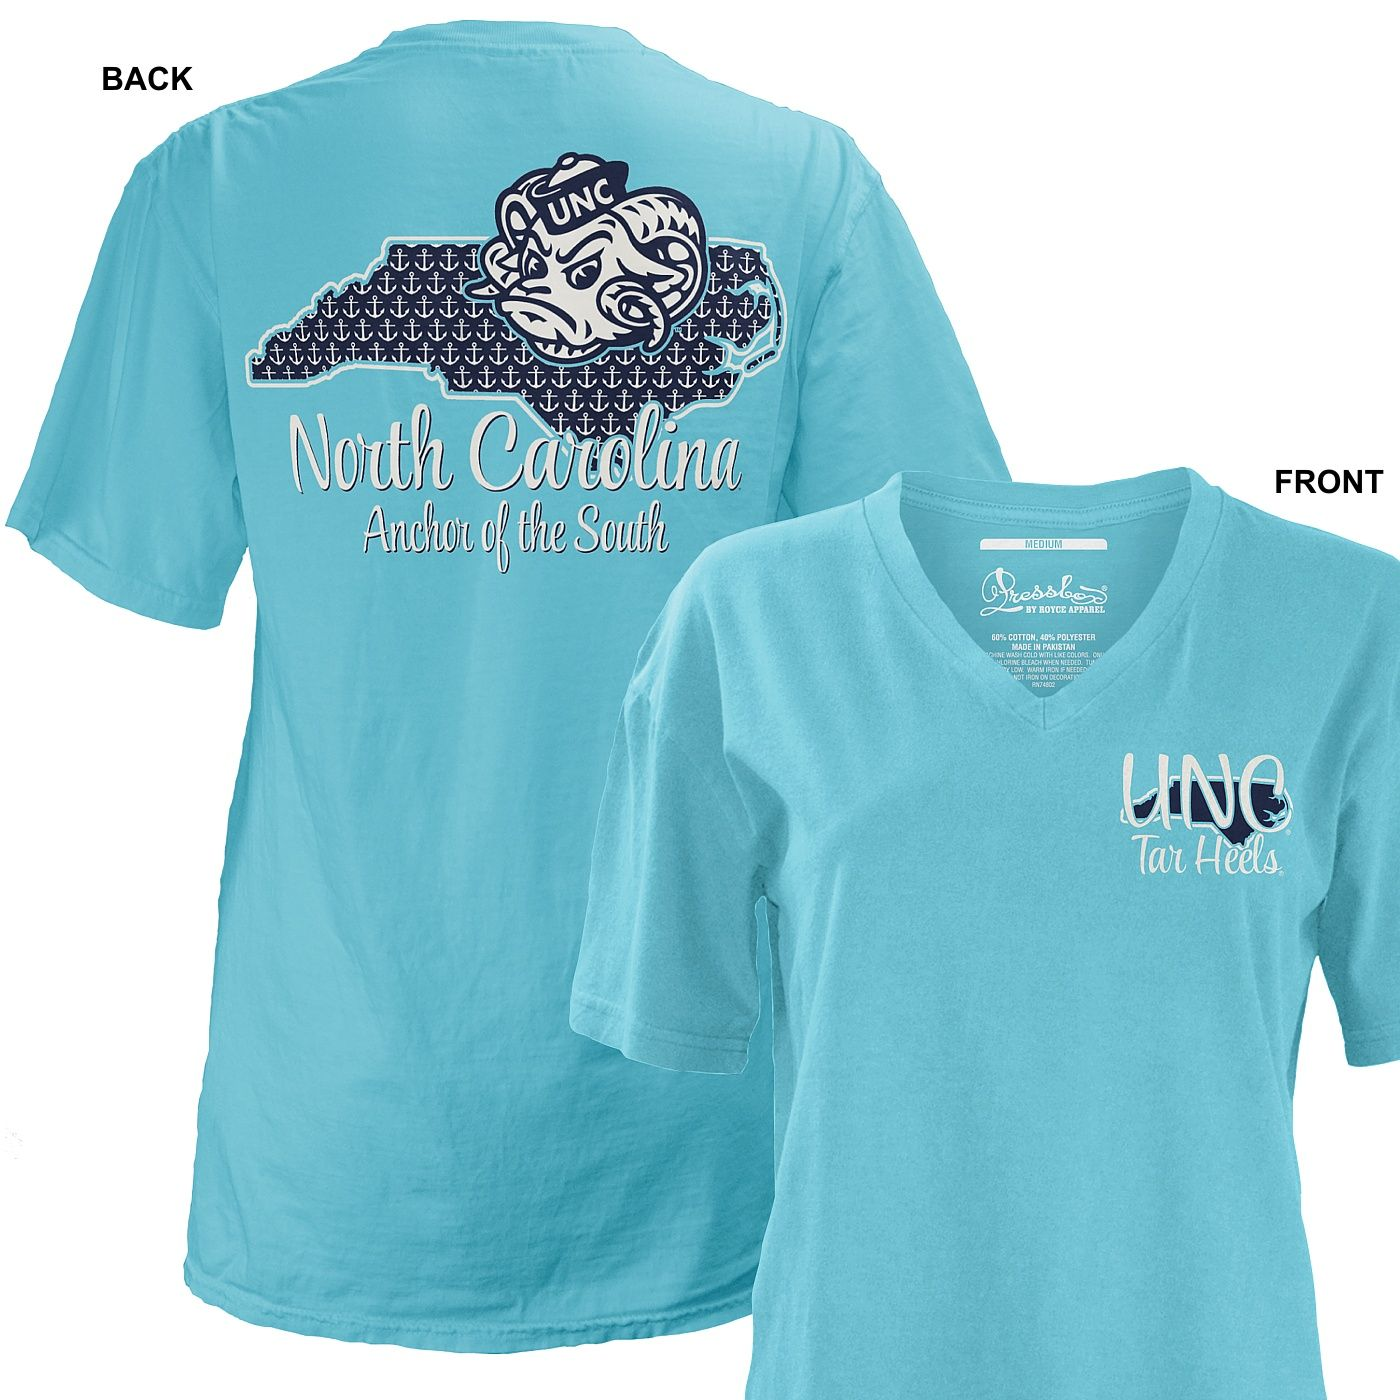 112ccd8f7ee State Anchor V-neck T - GAA members save 10% at Johnny T-shirt. #UNCGAA  alumni.unc.edu